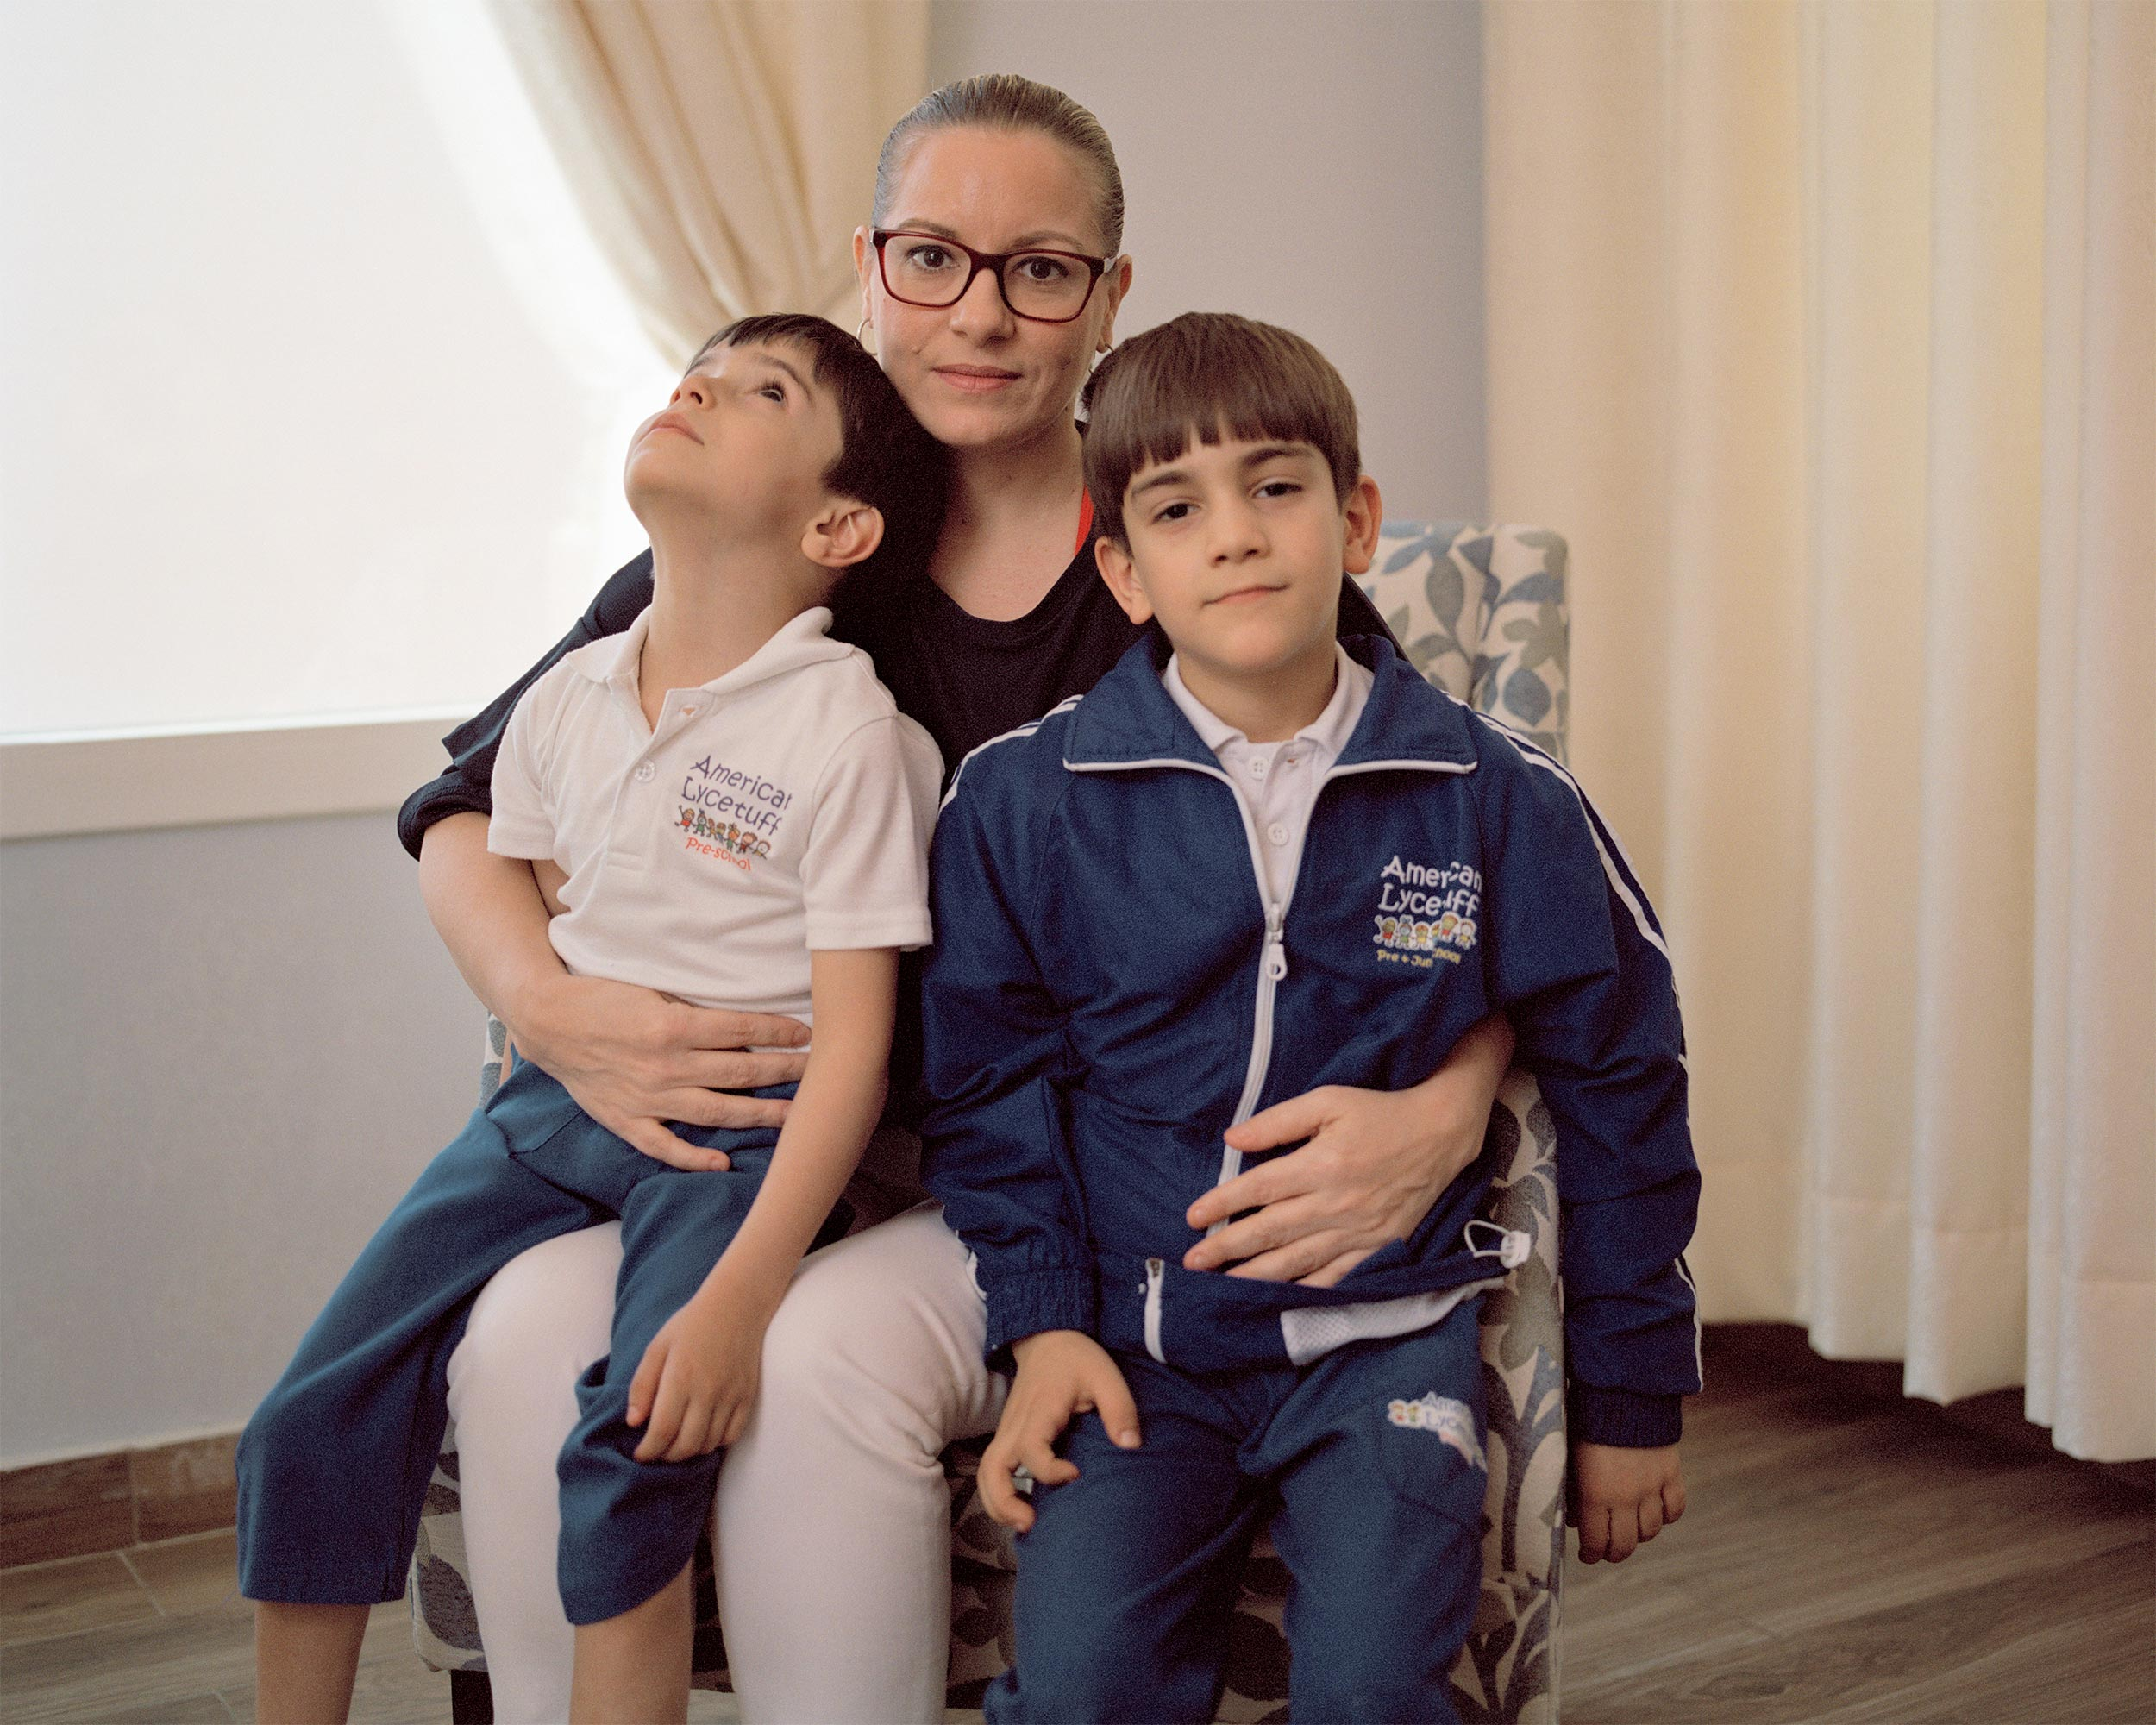 photograph of family from series XO